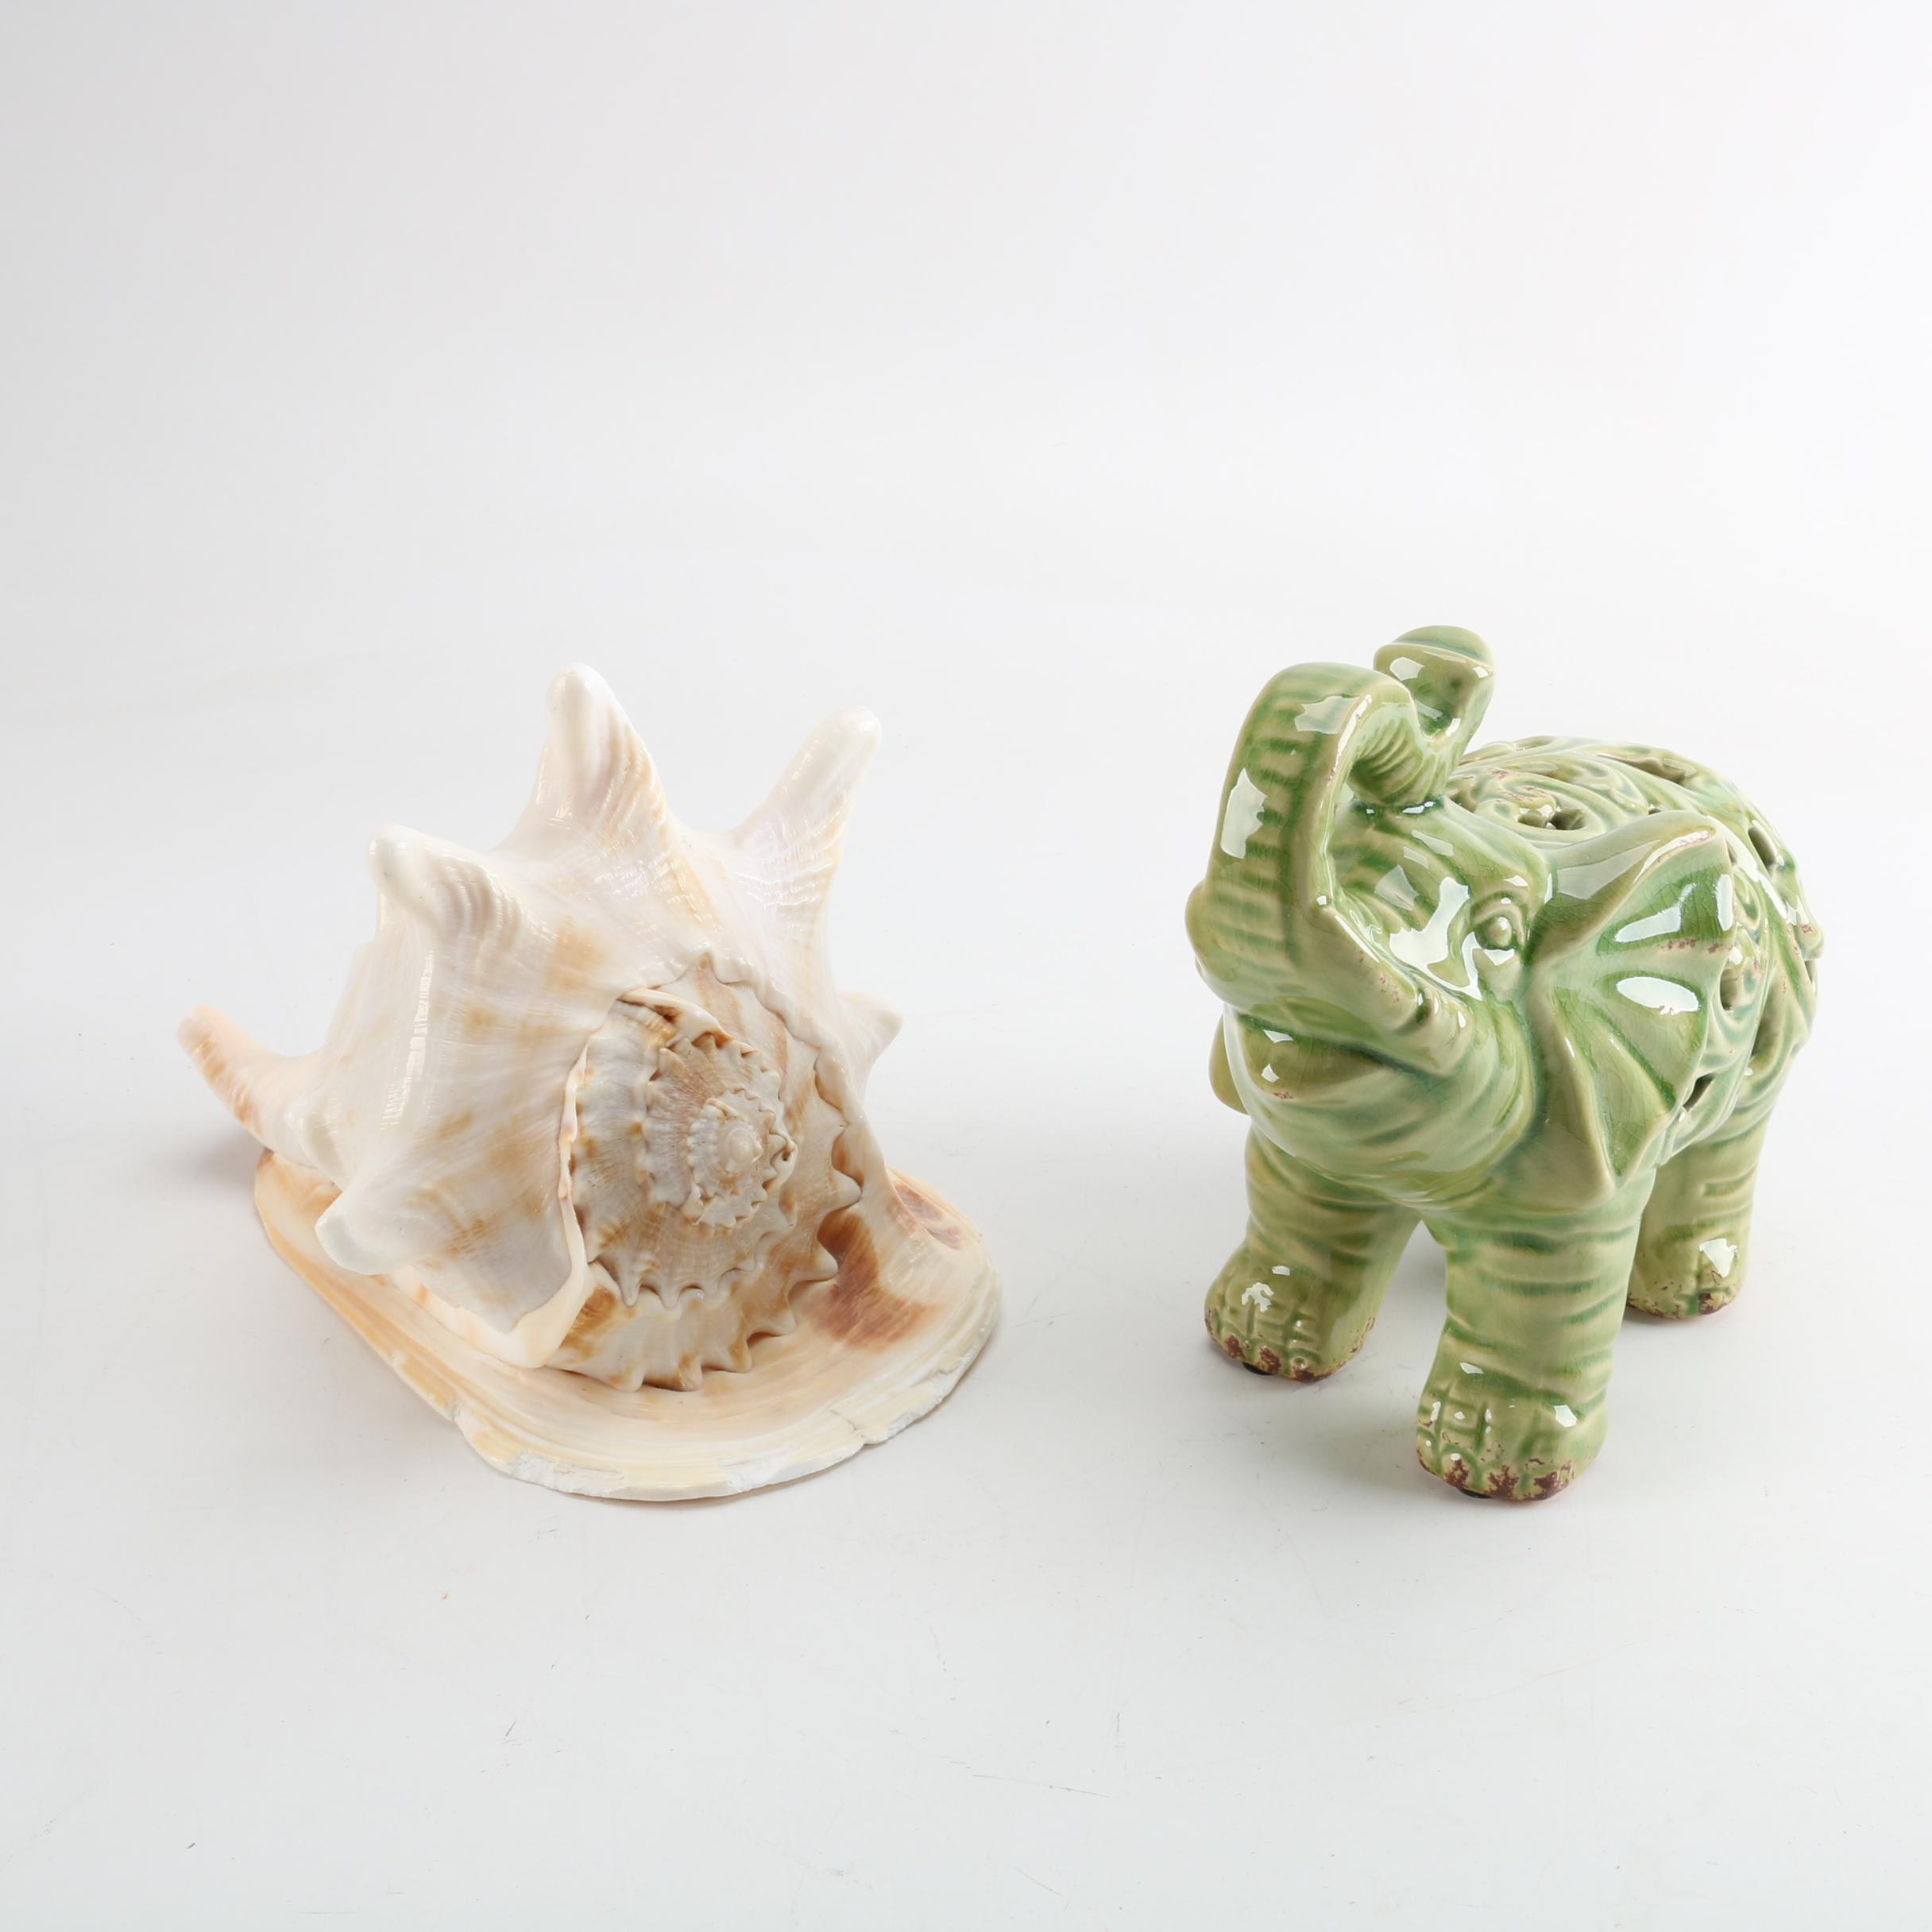 Ceramic Elephant Figurine and Queen Conch Shell